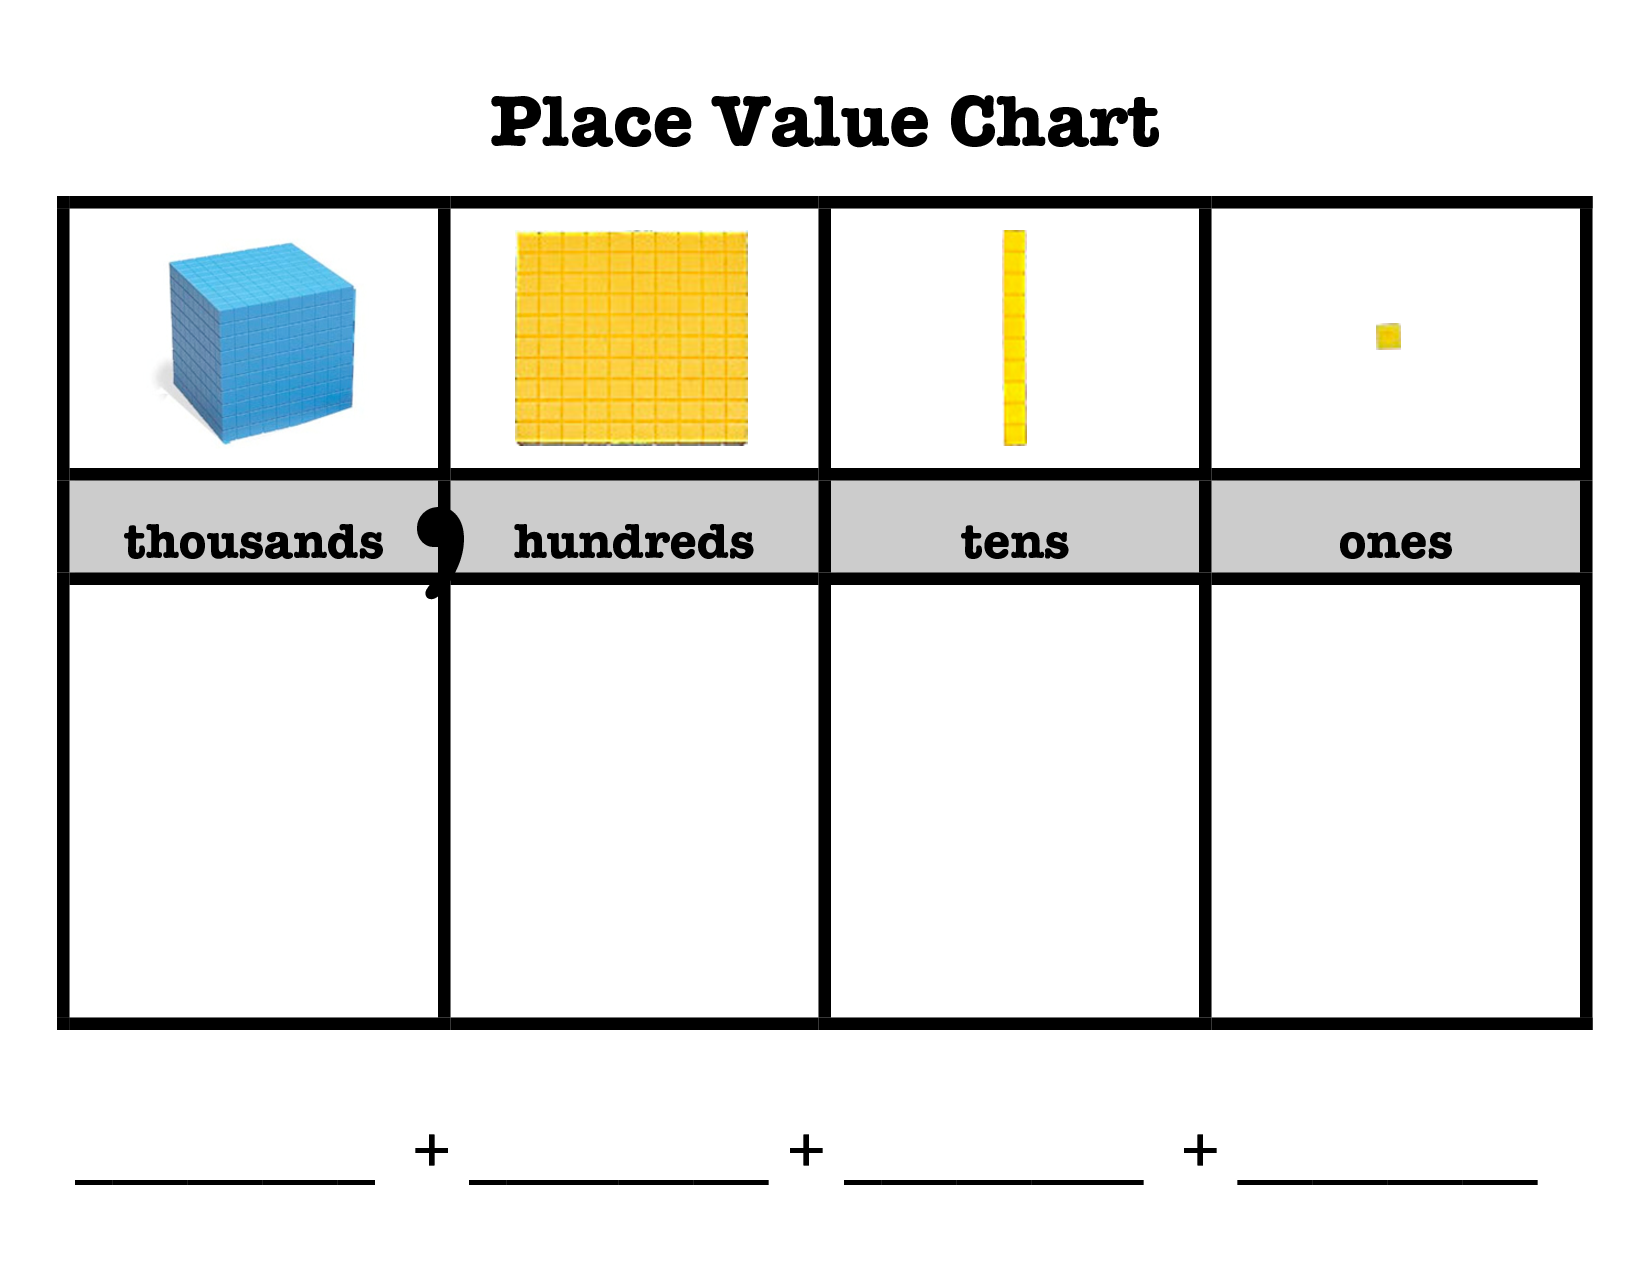 Terrible image intended for place value chart printable